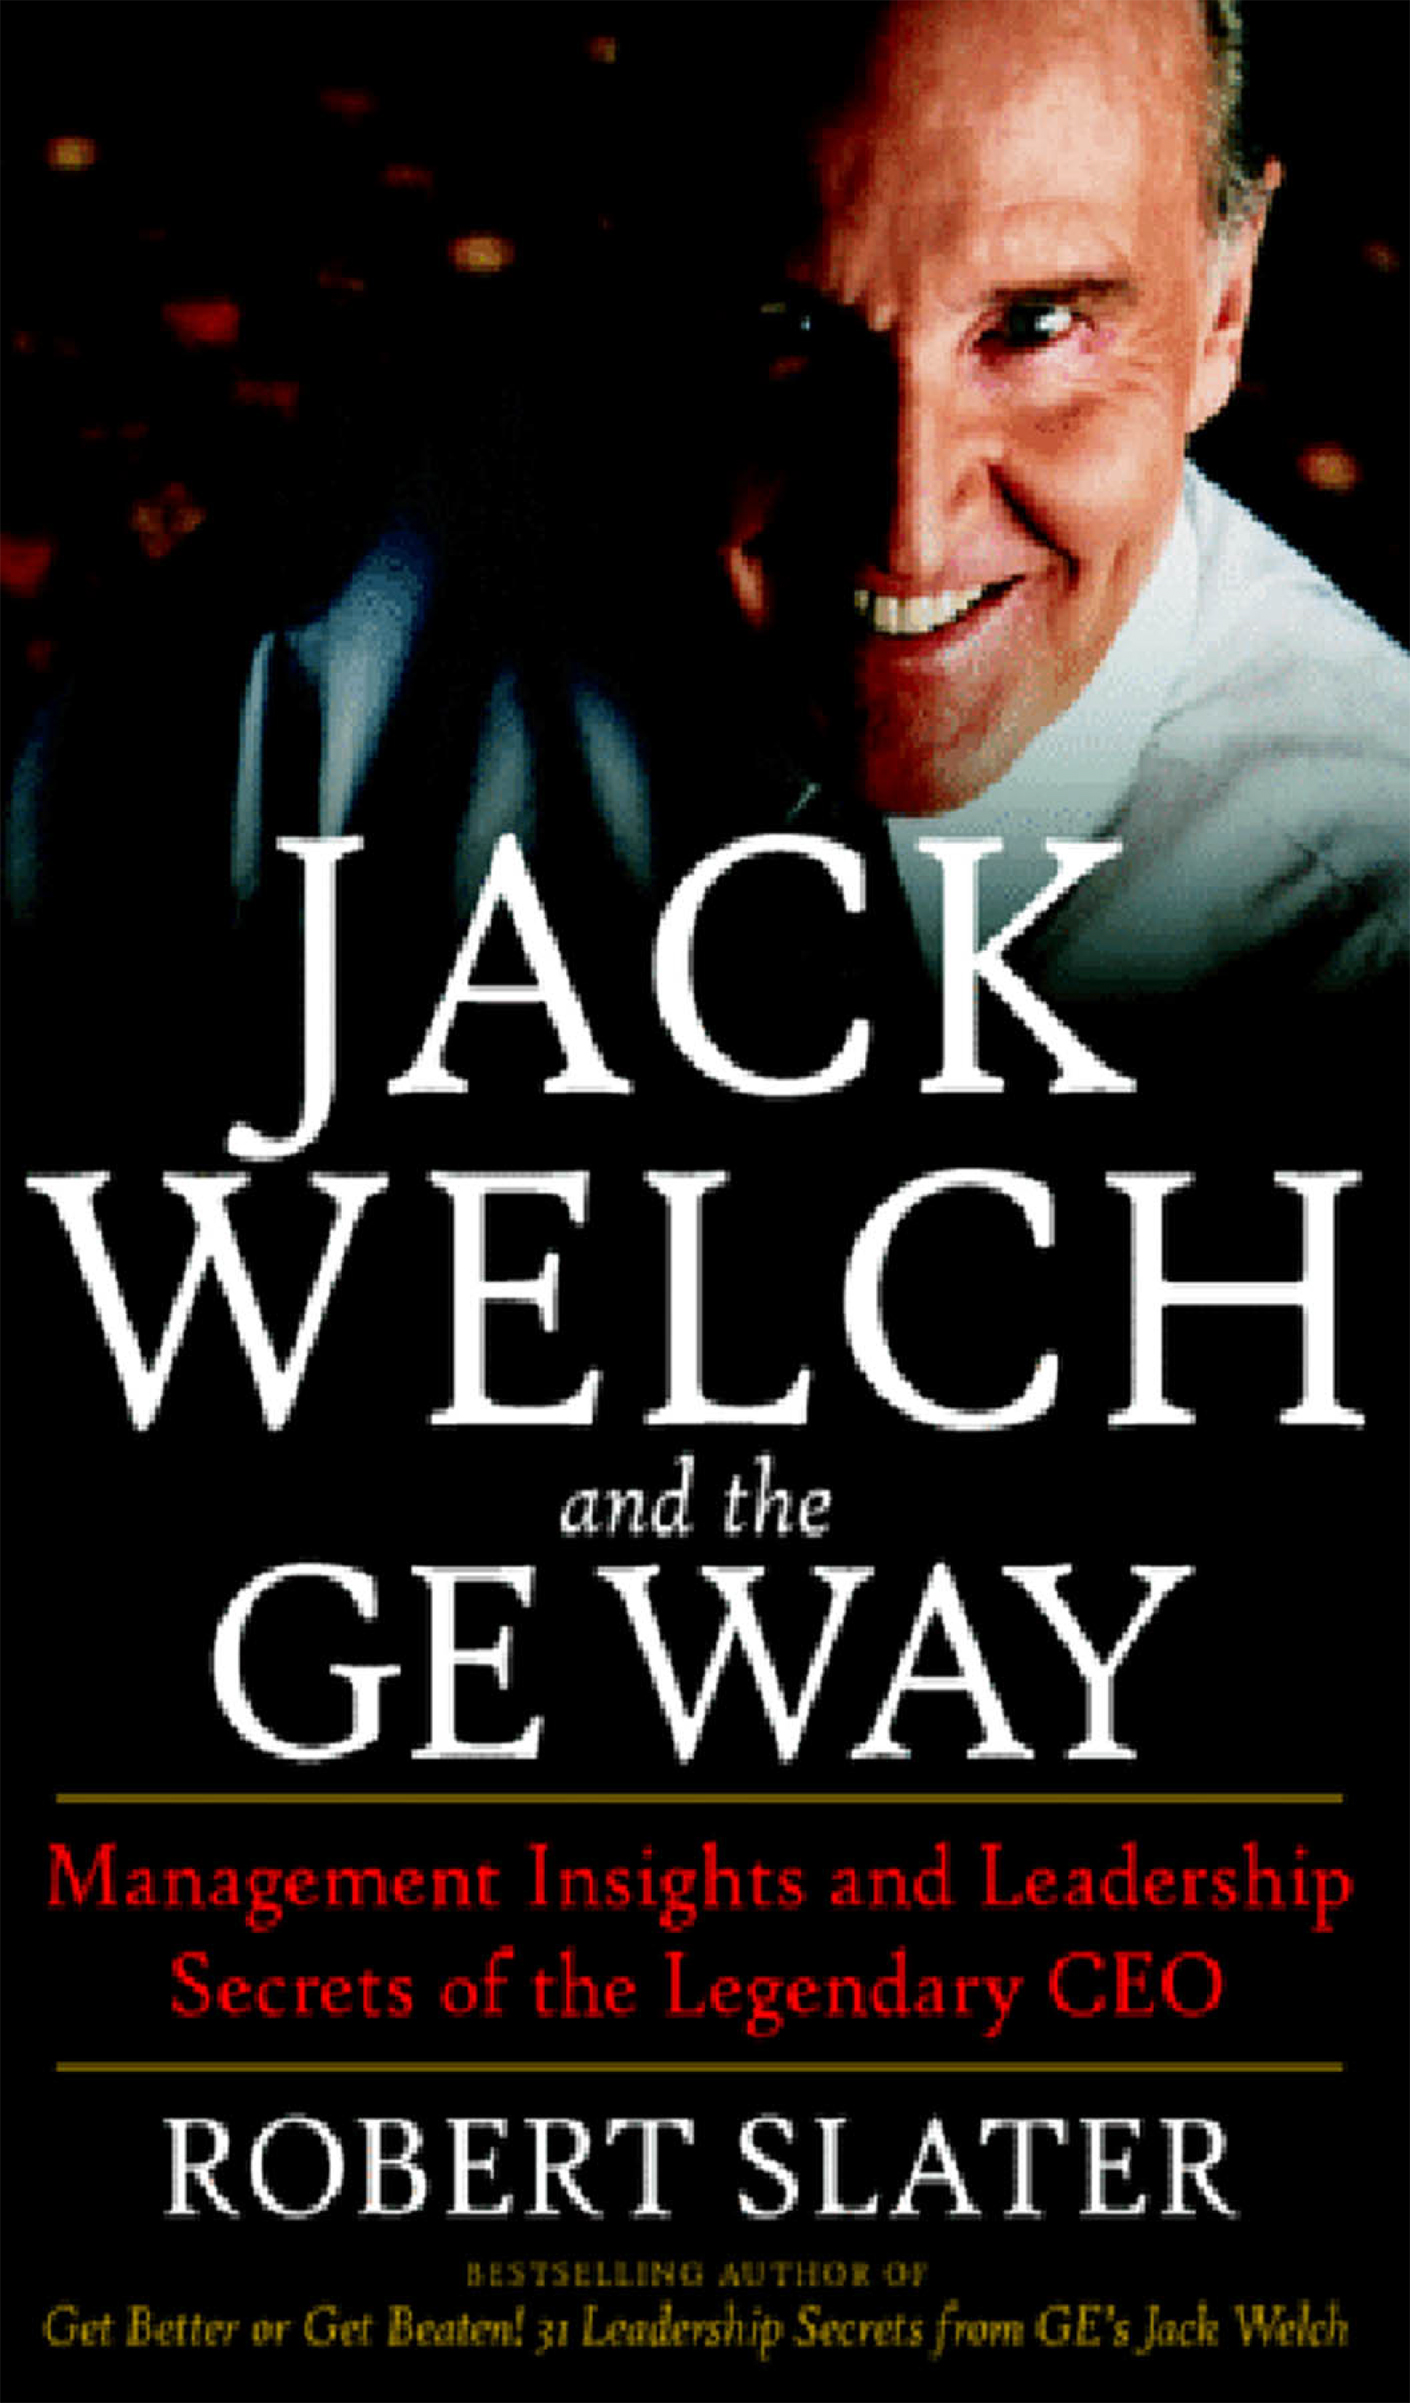 Download Ebook Jack Welch & The G.E. Way: Management Insights and Leadership Secrets of the Legendary CEO by Robert Slater Pdf